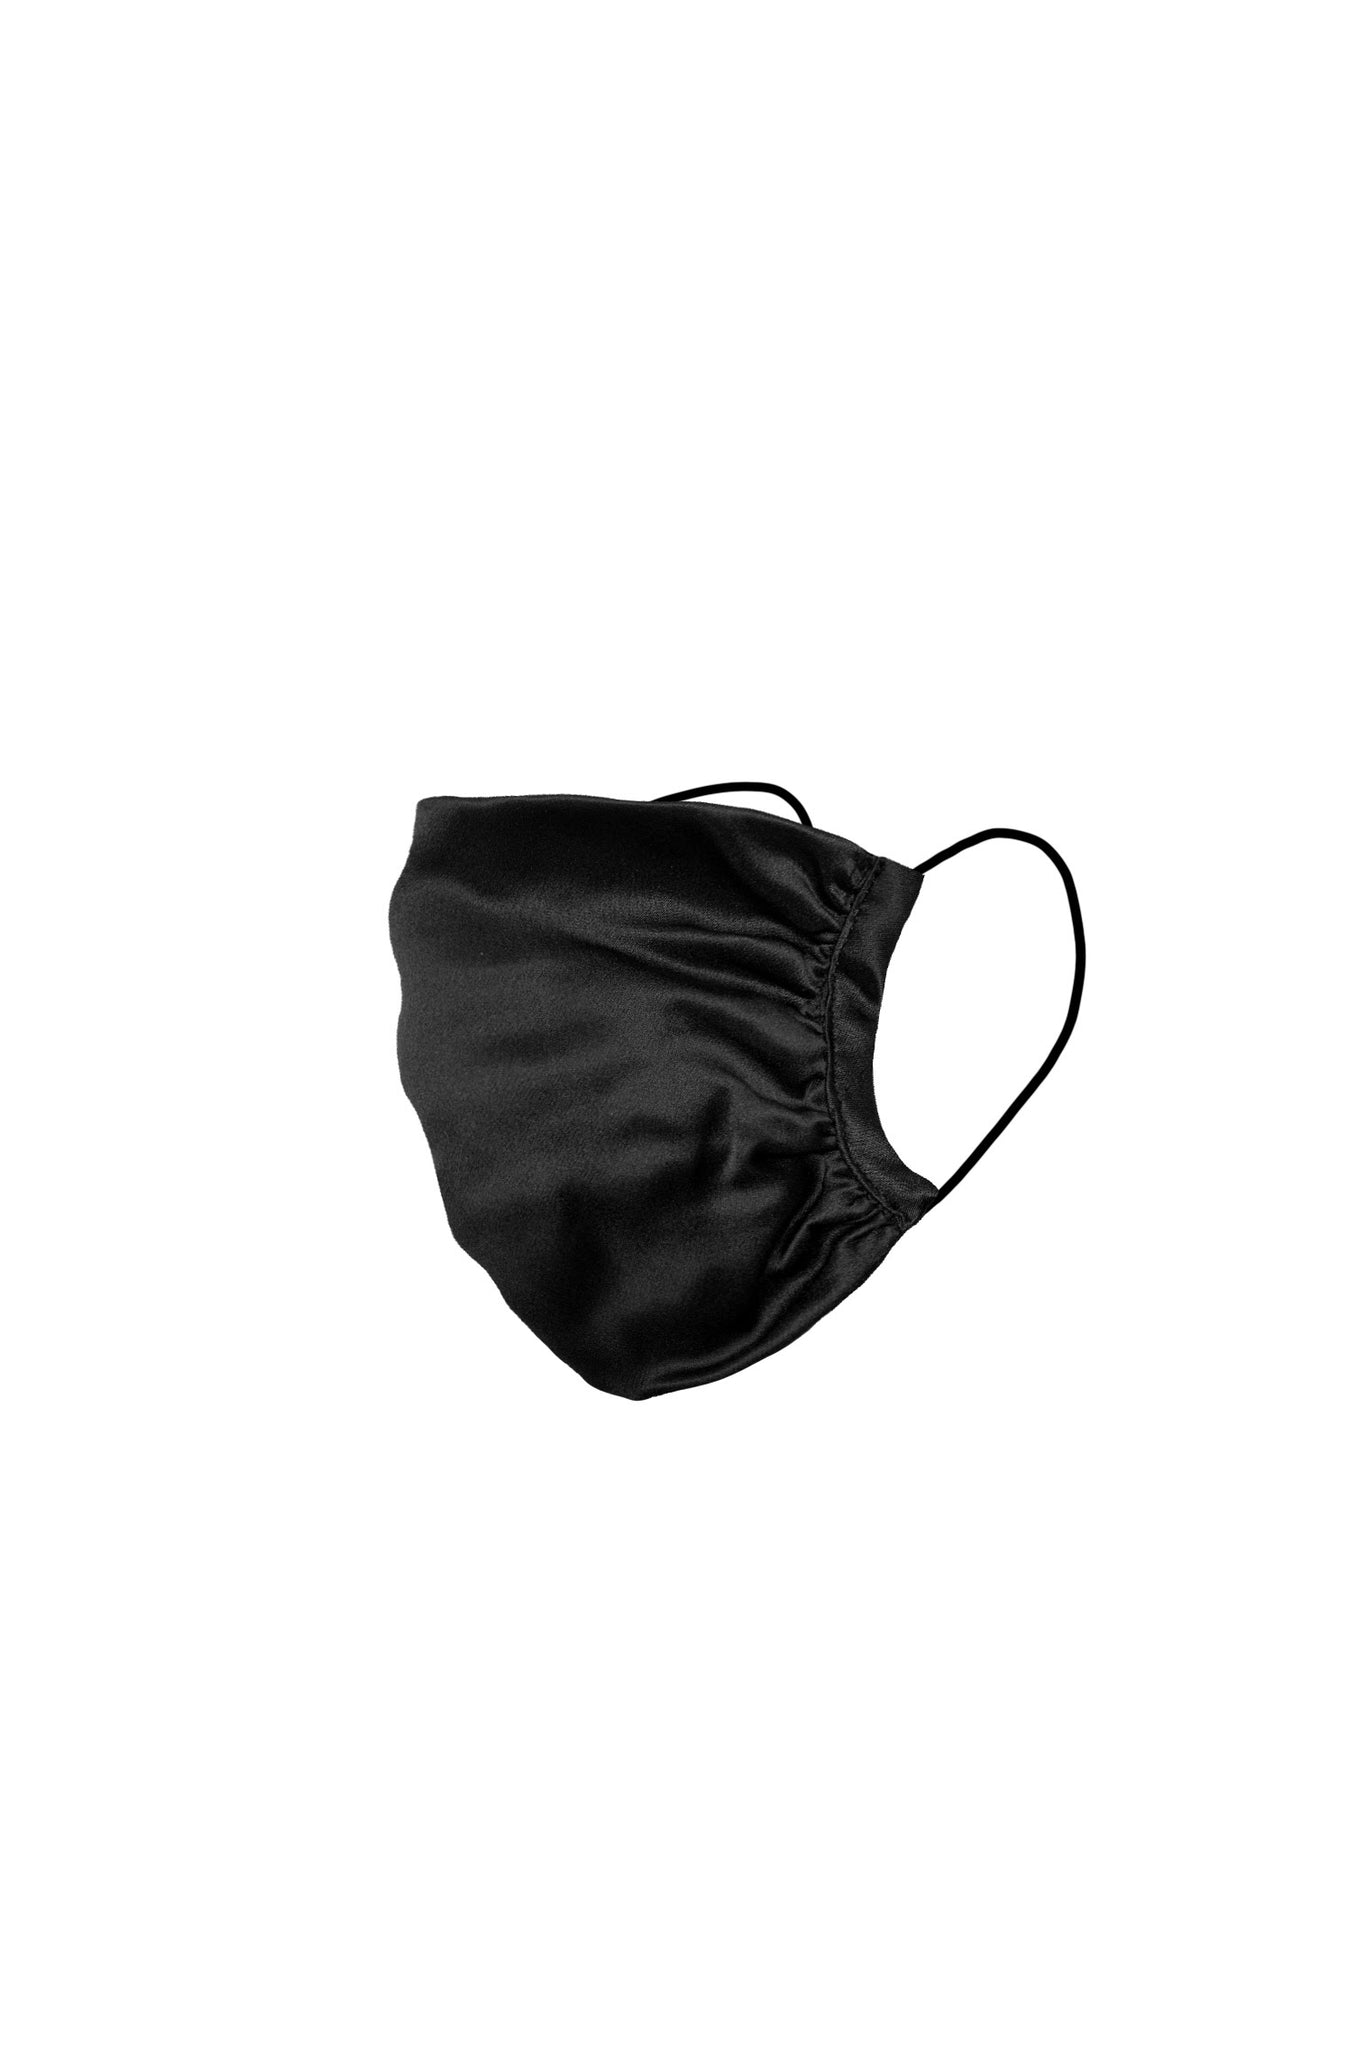 KES Peace Face Covering - Black Silk (2 in 1 Pack)